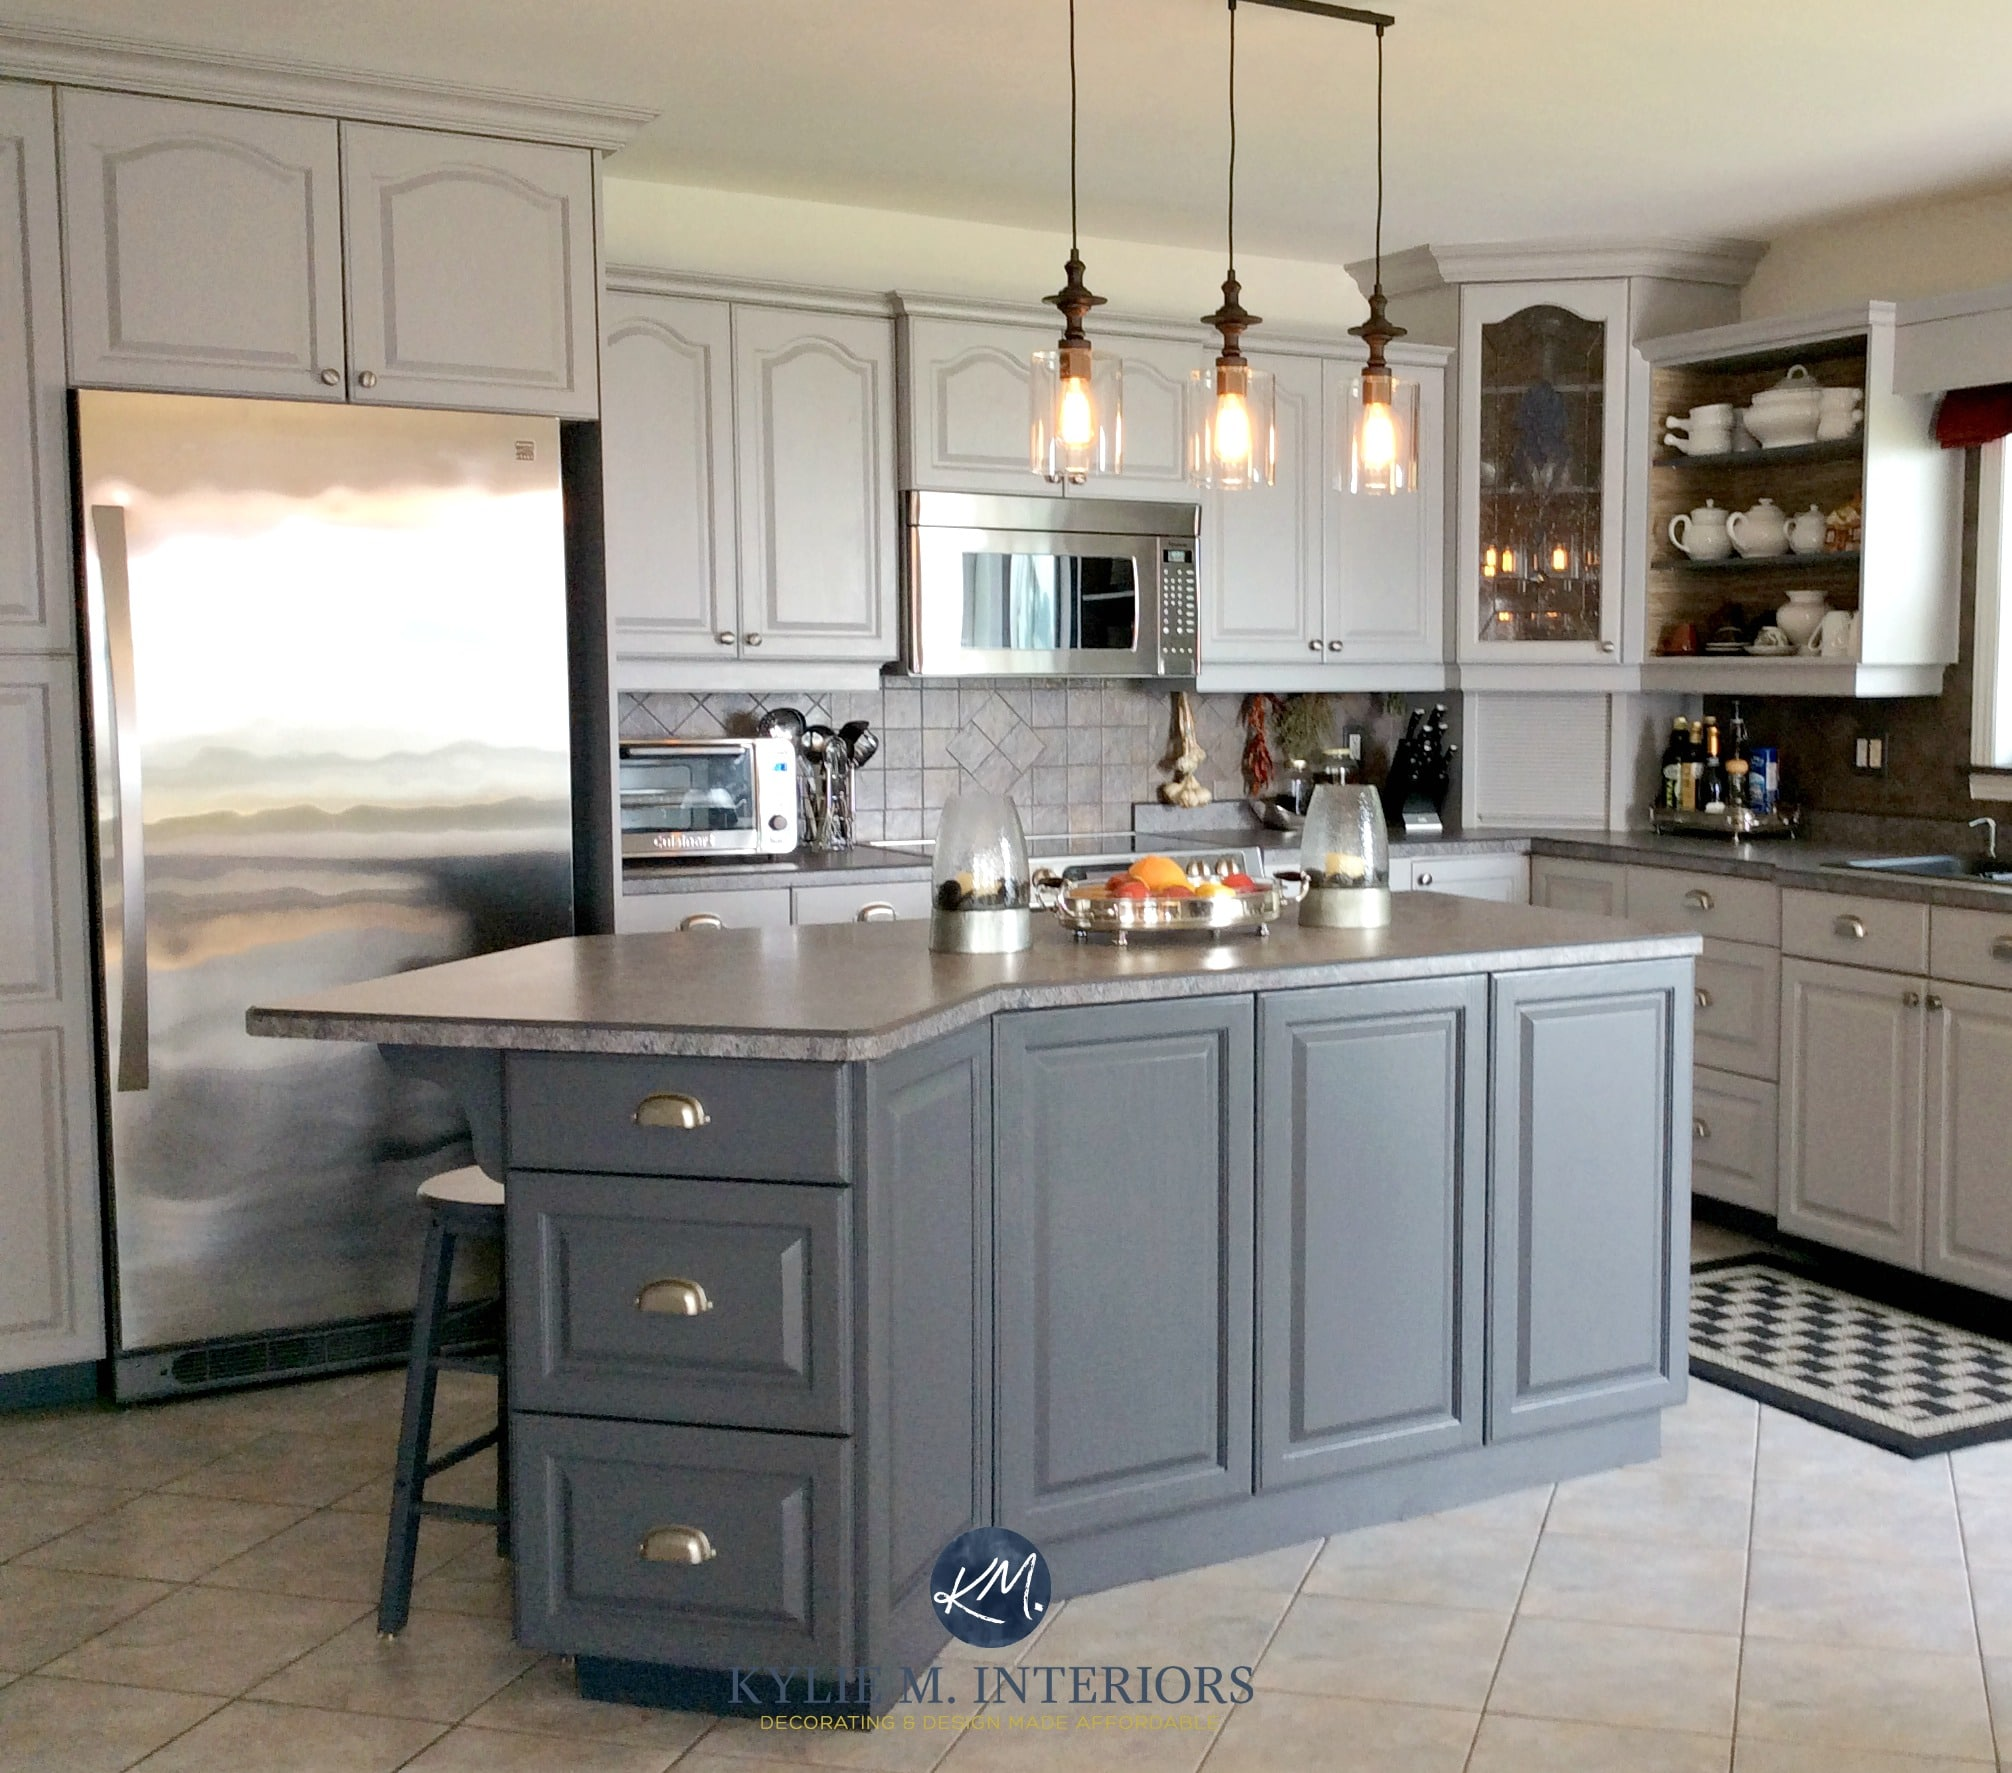 Oak Kitchen Cathedral Cabinets Painted Benjamin Moore Baltic Gray And Gray  2121 10. With Beige Floor Tile. Kylie M INteriors E Design And Online Color  ...